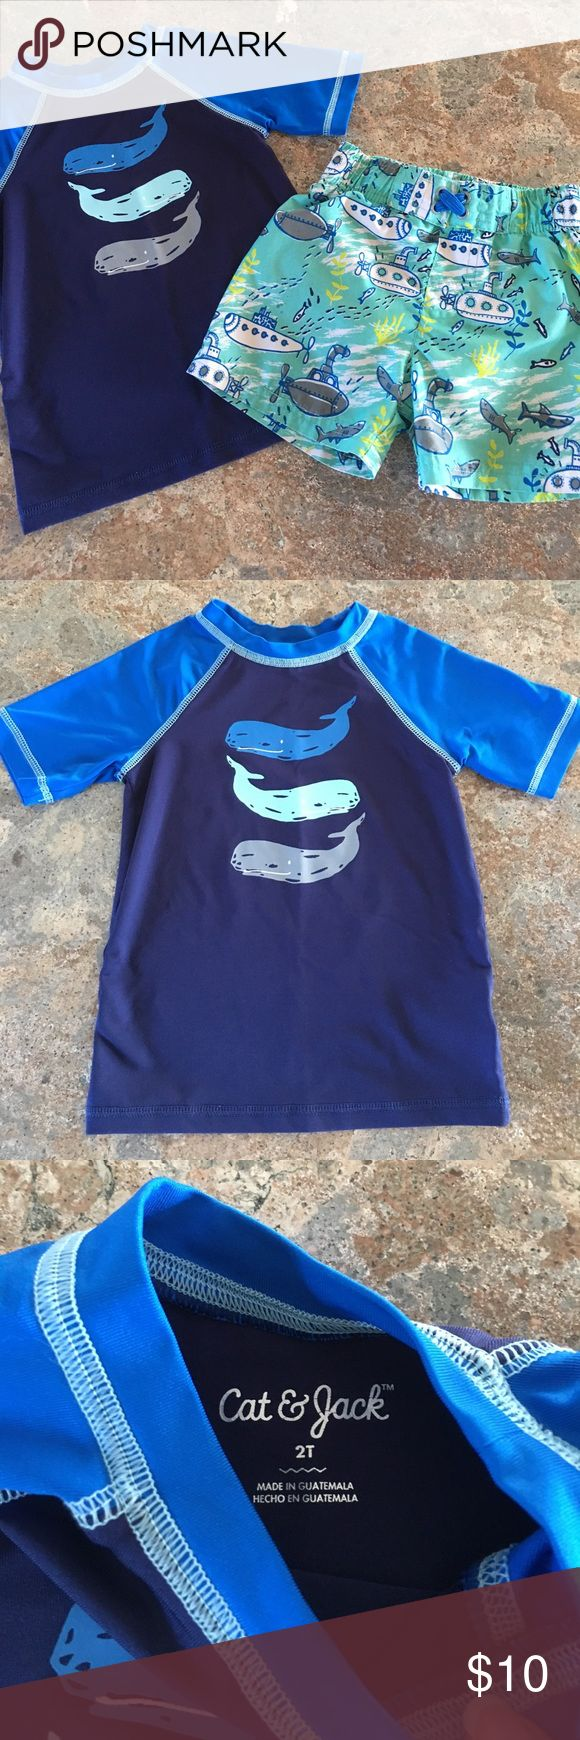 Cat and Jack toddler boy swim set! In good used condition! Whale rash guard shirt is in excellent condition it was hardly worn. Swim shorts are more used and have wear to the back side at bum area as pictured. Has some piling to shorts as well. Shorts are also lined. Both Cat and Jack from target size 2T Cat & Jack Swim Swim Trunks